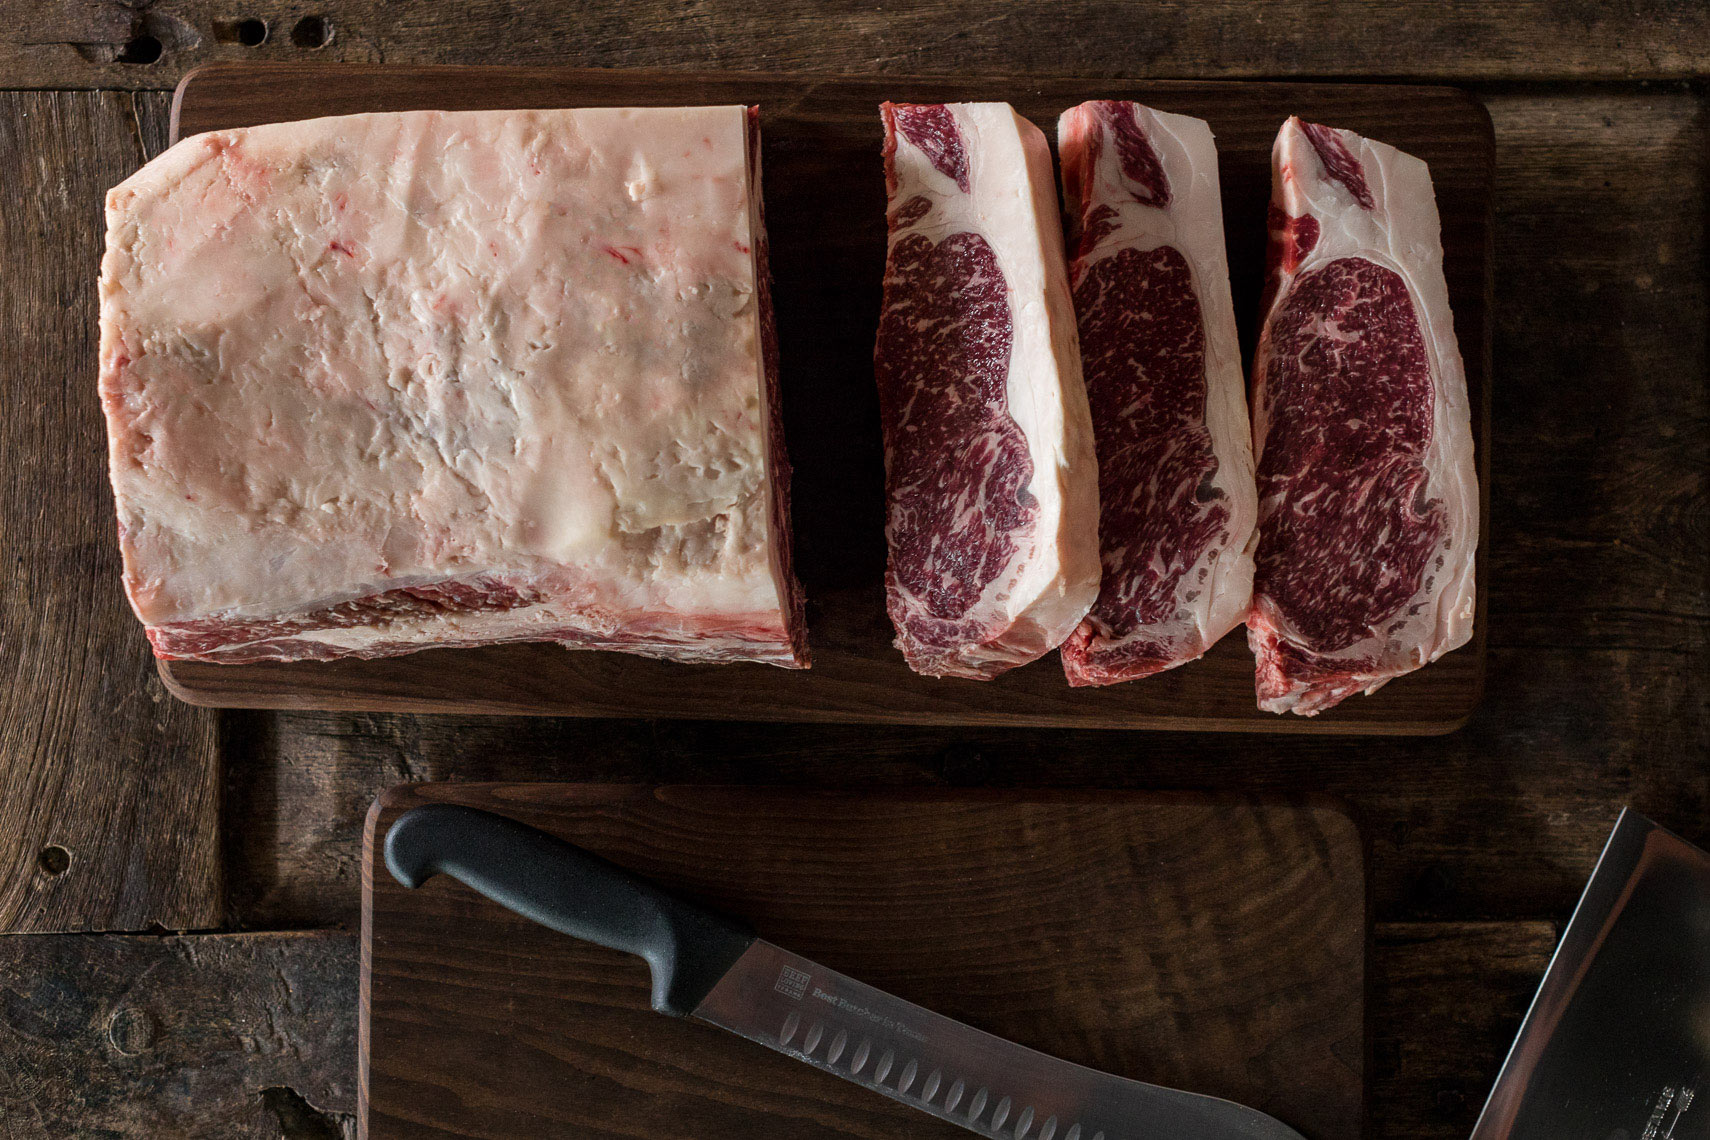 peeler-ranch-wagyu-beef-texas-jason-risner-photography-9543